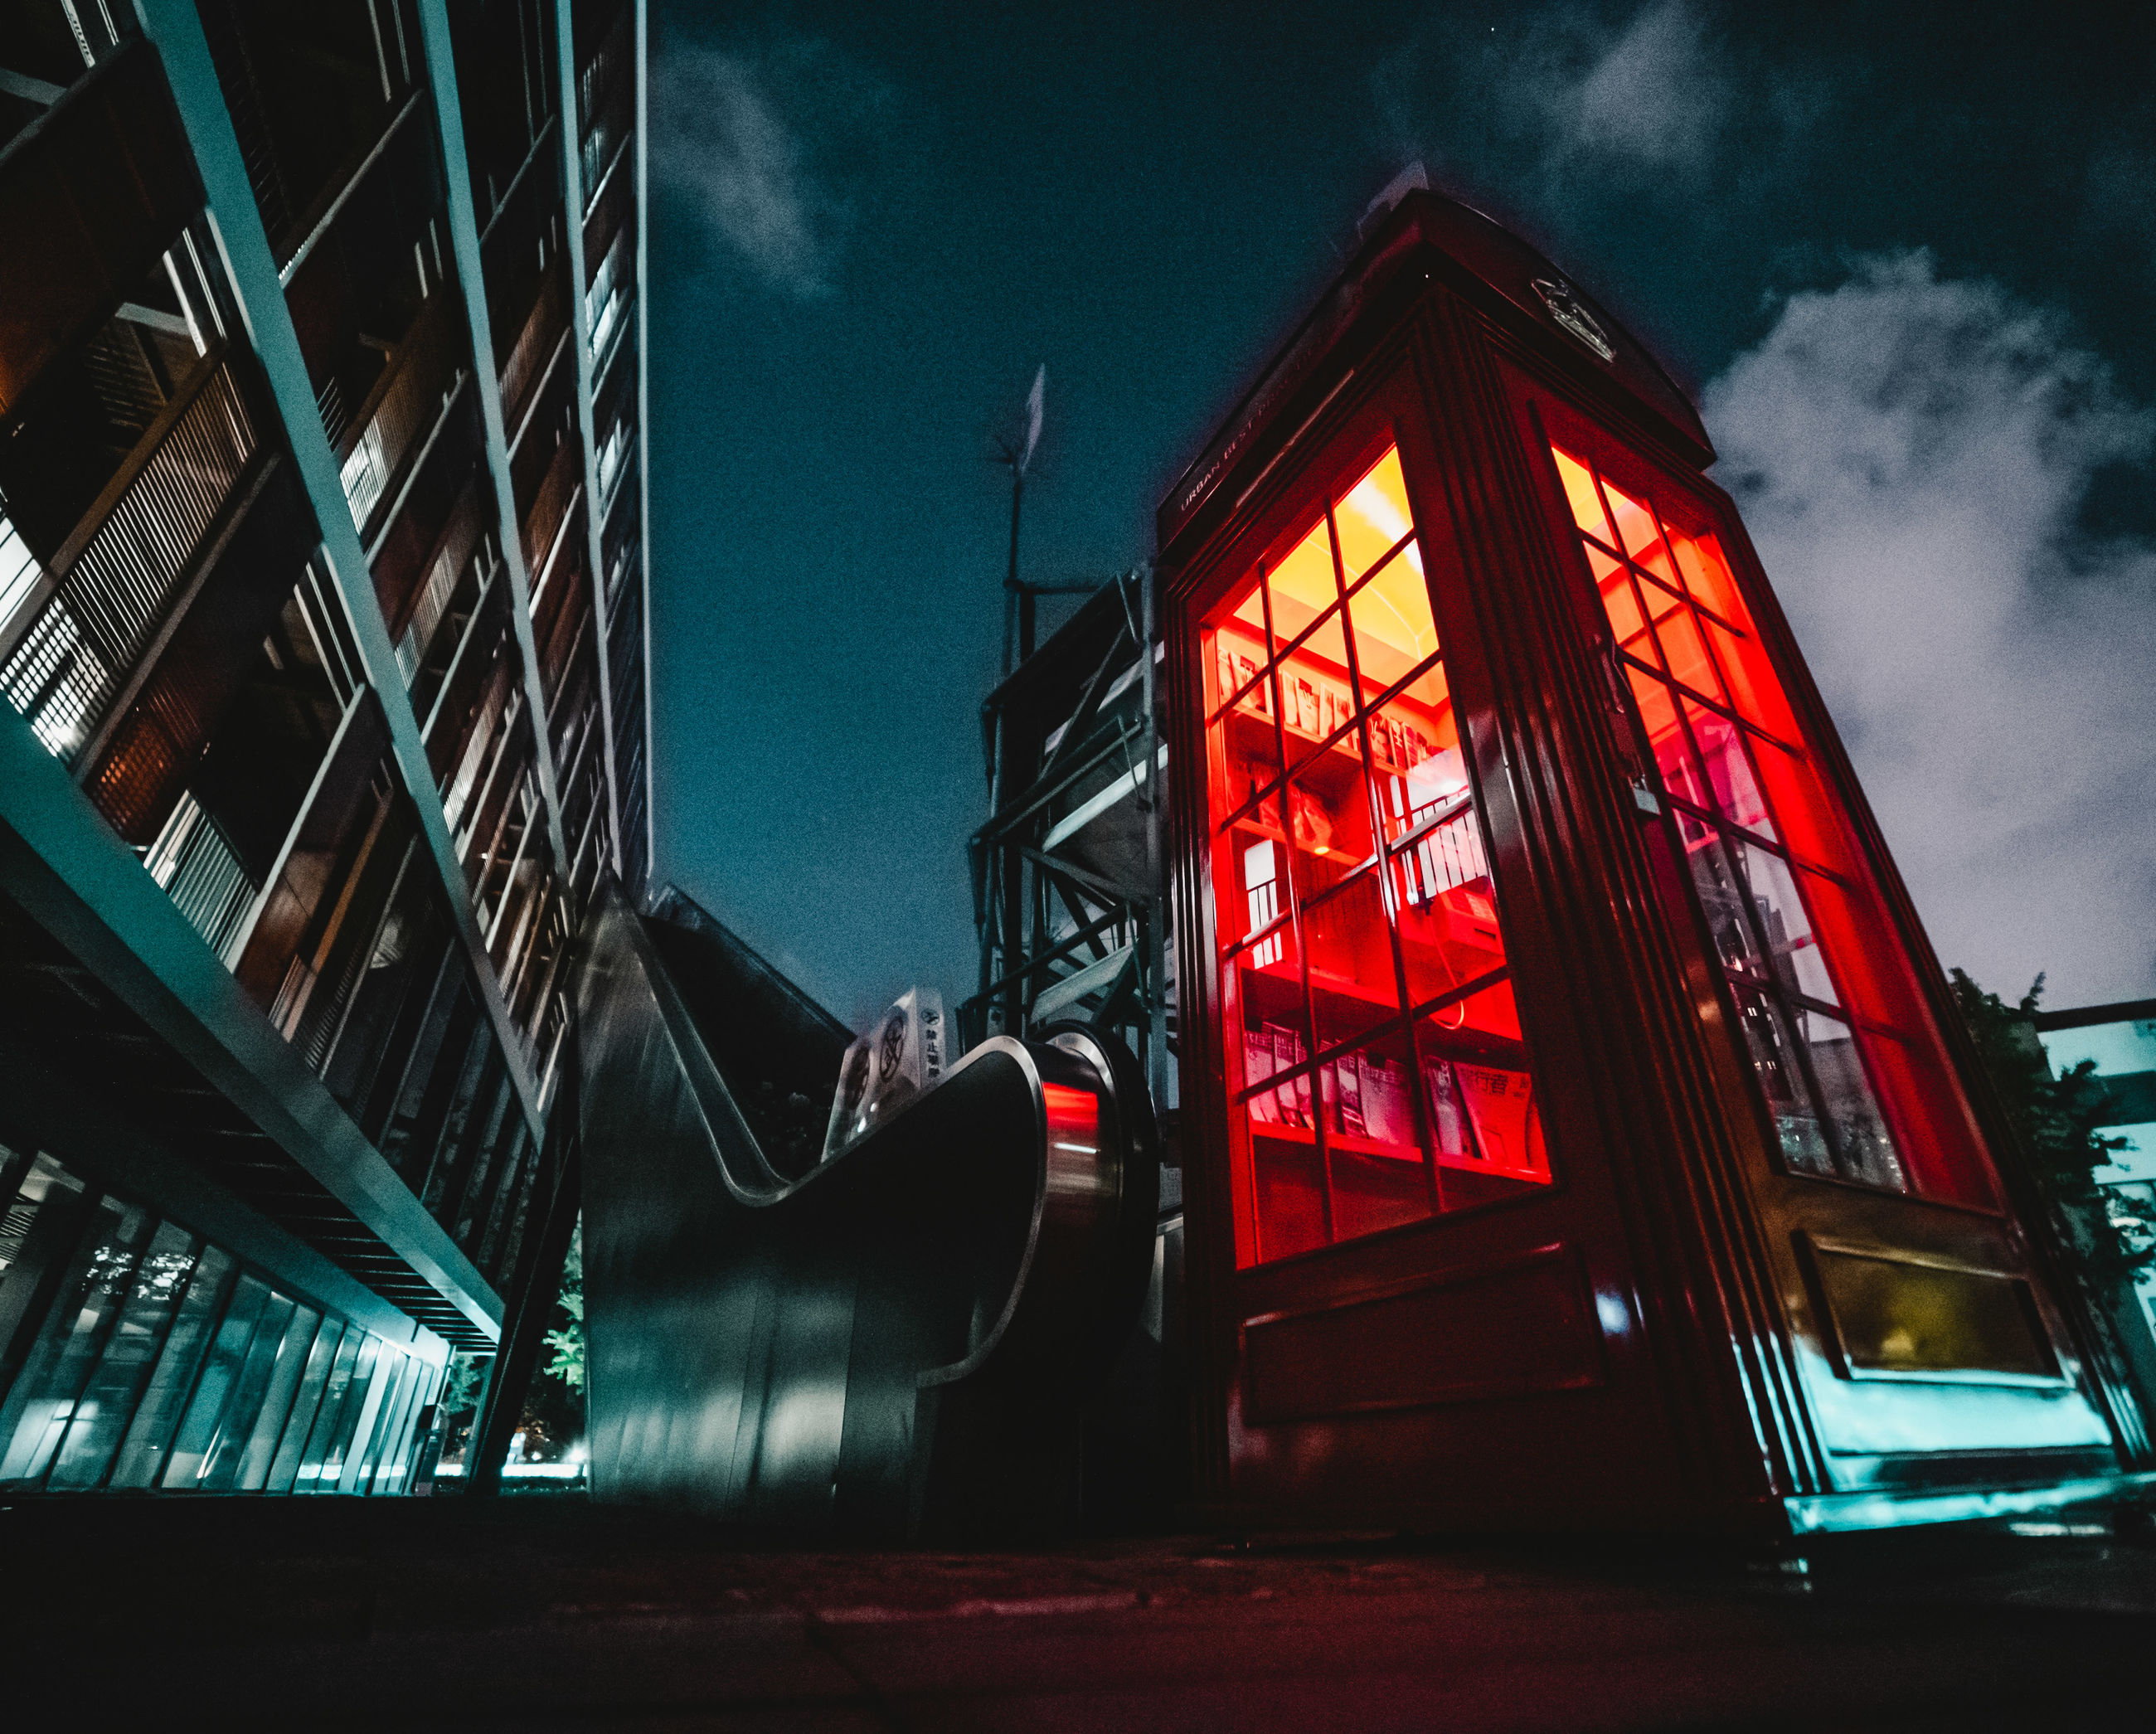 architecture, built structure, building exterior, sky, low angle view, night, no people, nature, building, cloud - sky, illuminated, city, outdoors, dusk, industry, red, glass - material, accidents and disasters, railing, travel destinations